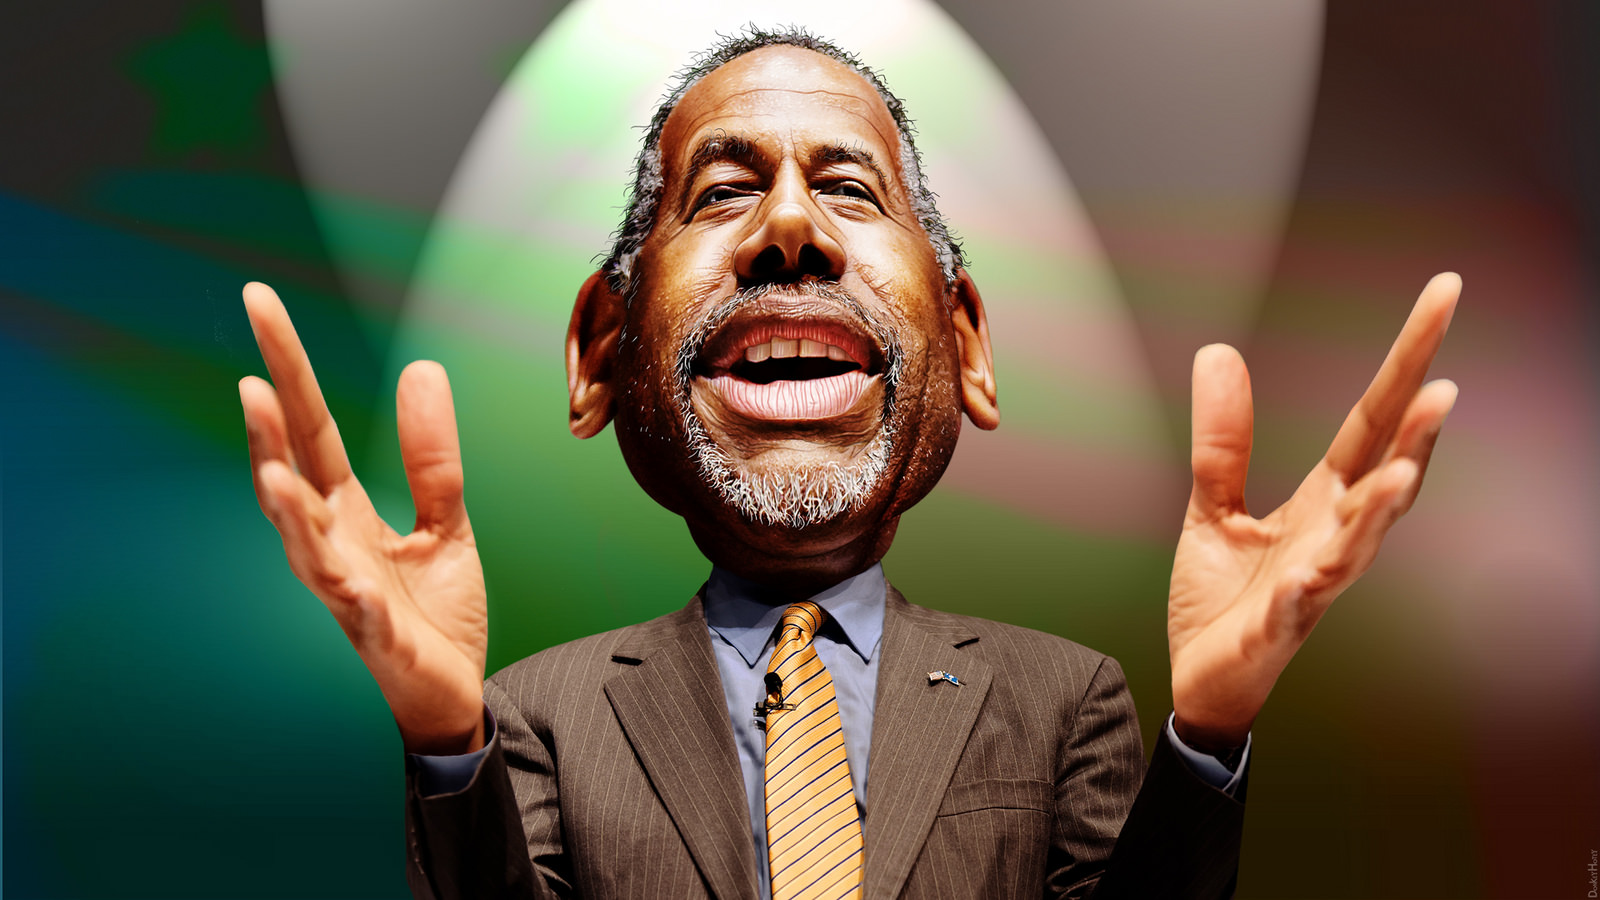 Ben carson islamophobe extraordinaire the islamic monthly for The carson